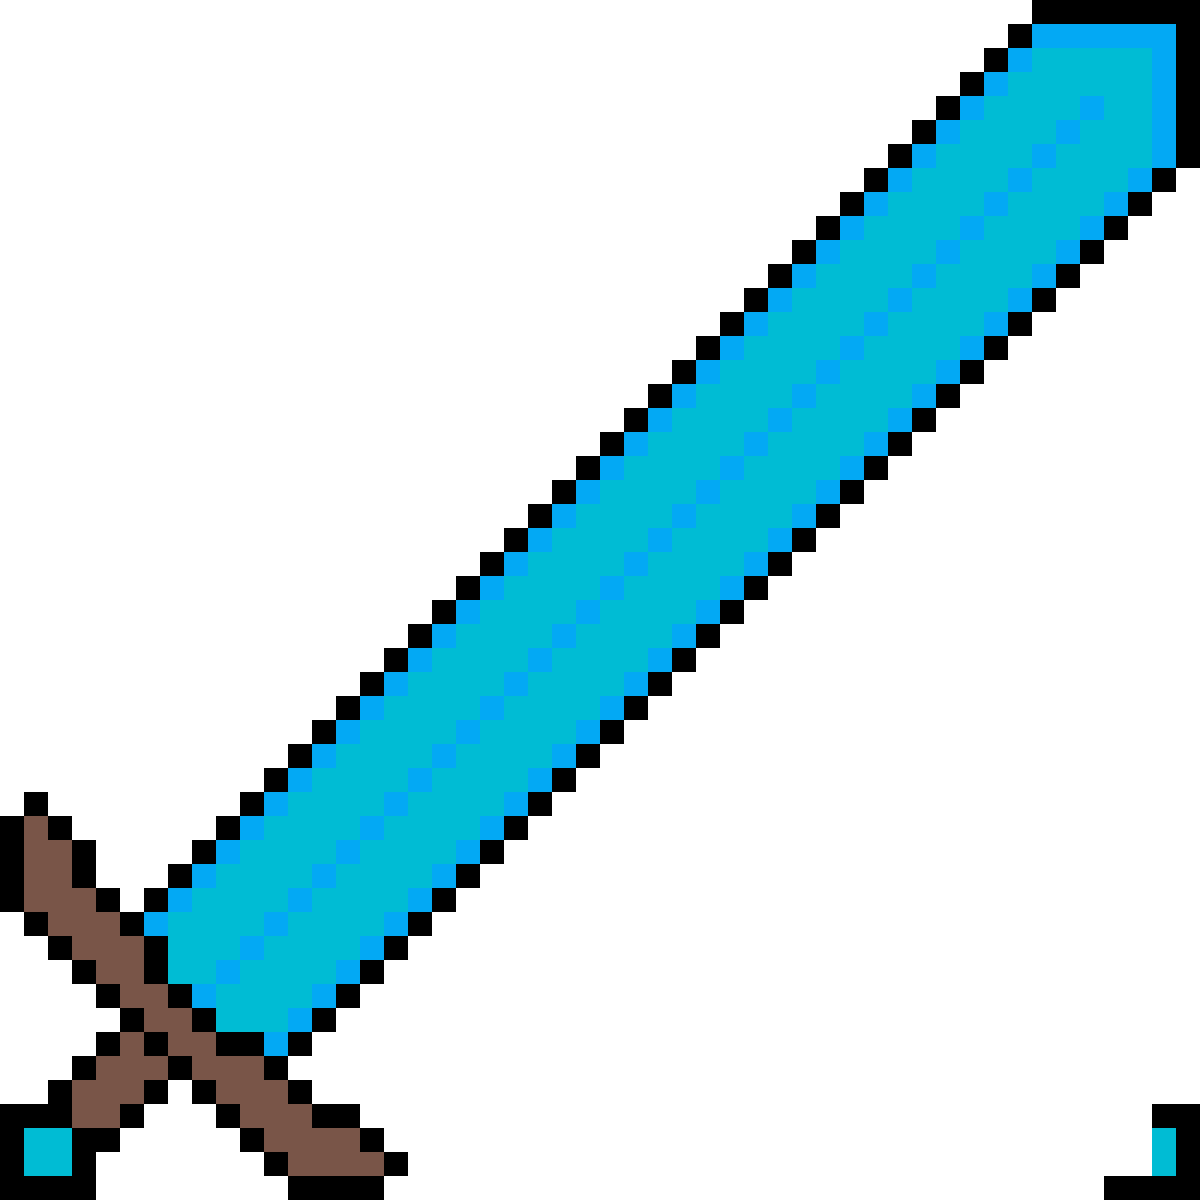 Download Diamond Sword For Texture Pack Katana Minecraft Png Image With No Background Pngkey Com